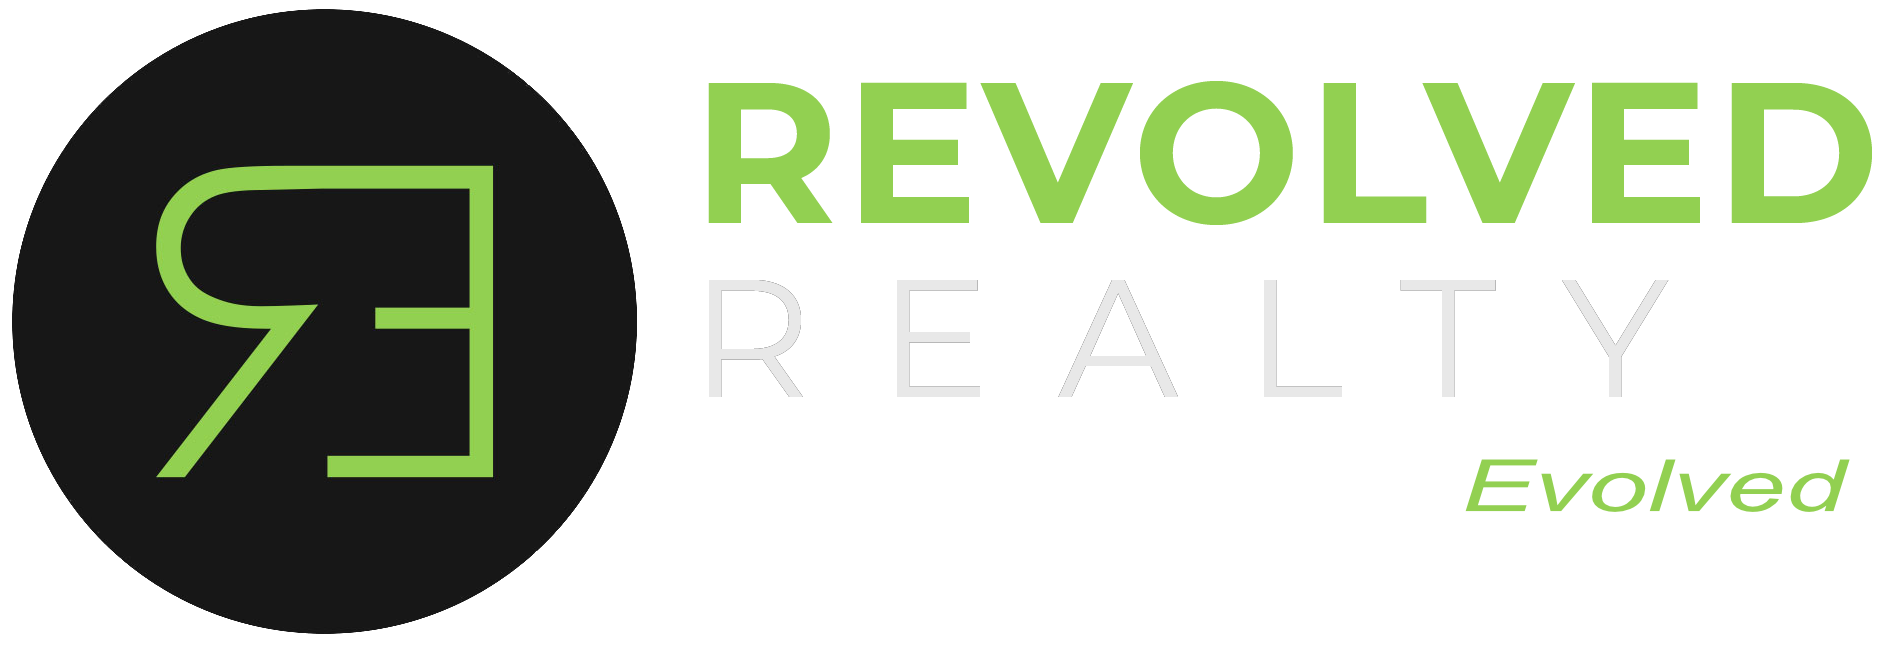 Revolved Realty Group of Athens, Madison, Huntsville, Decatur and all of North Alabama